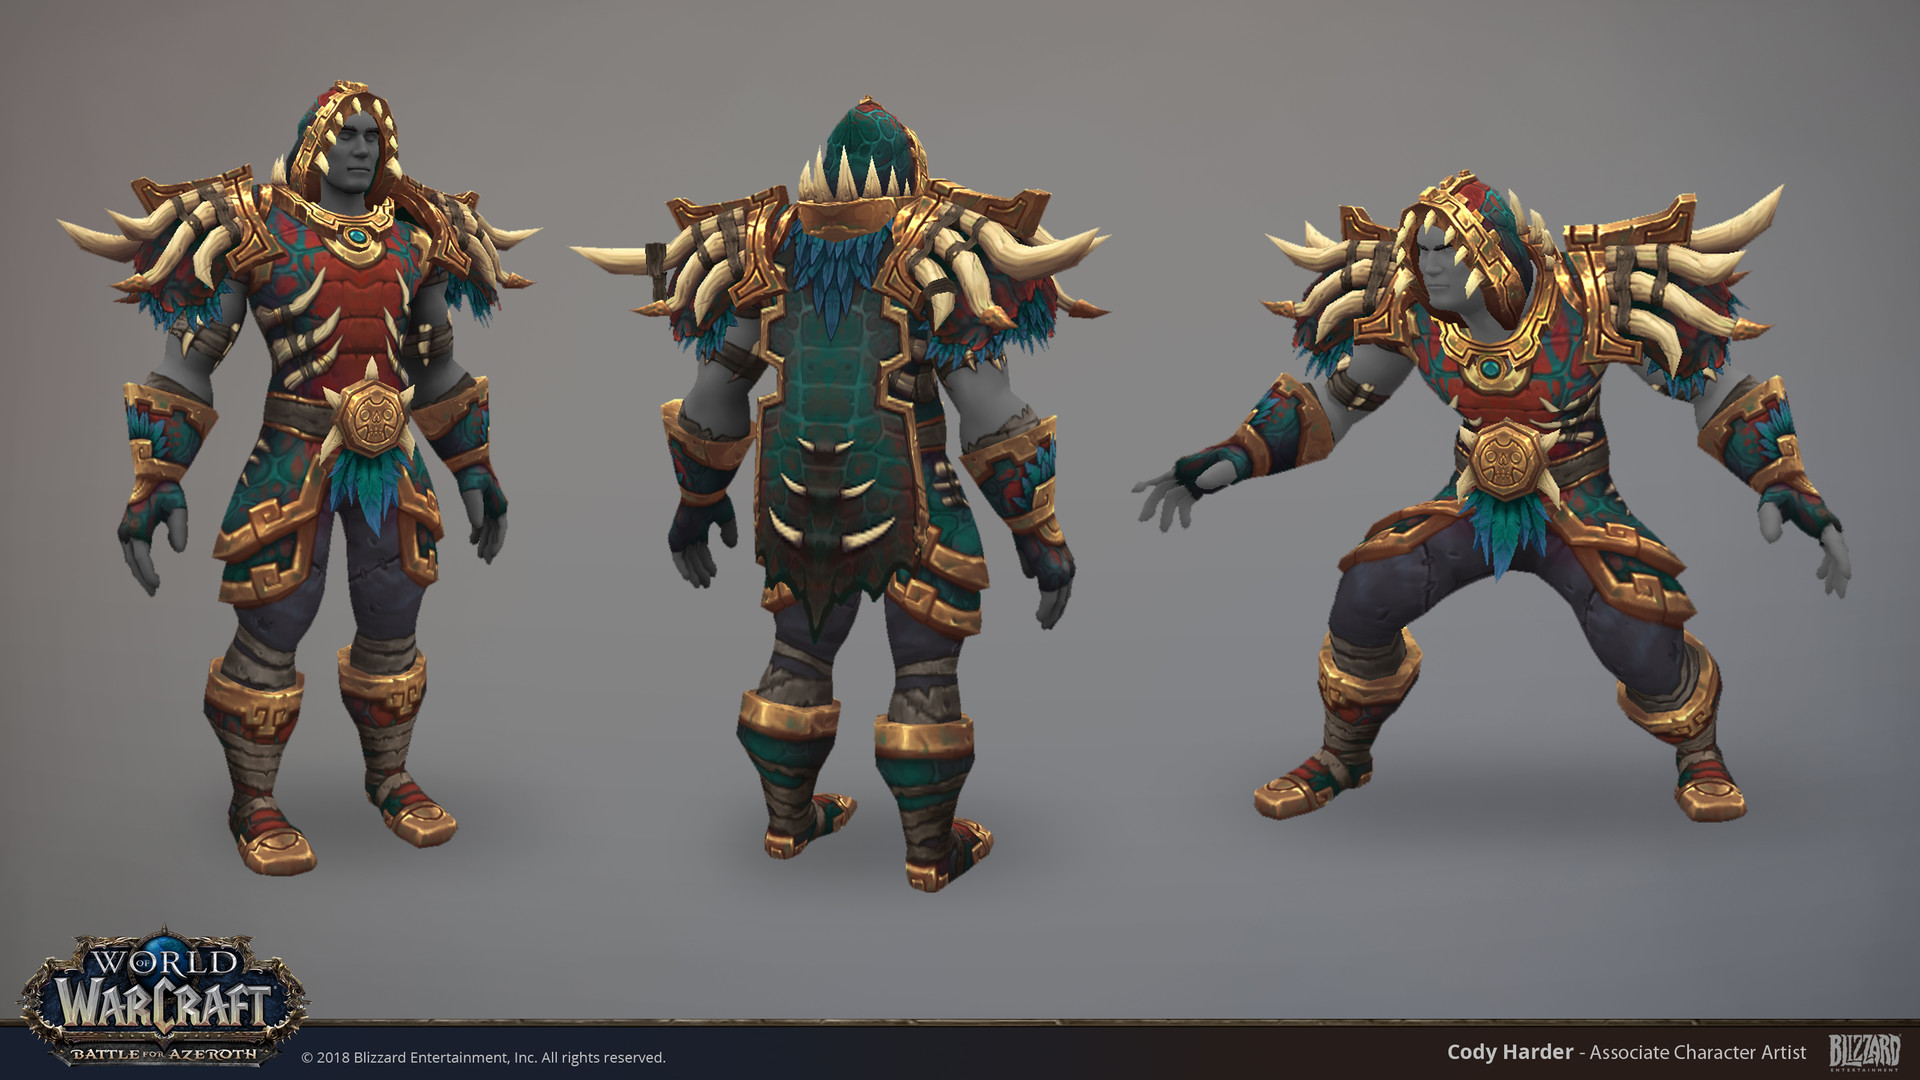 Style example from World of Warcraft - Art by Cody Harder